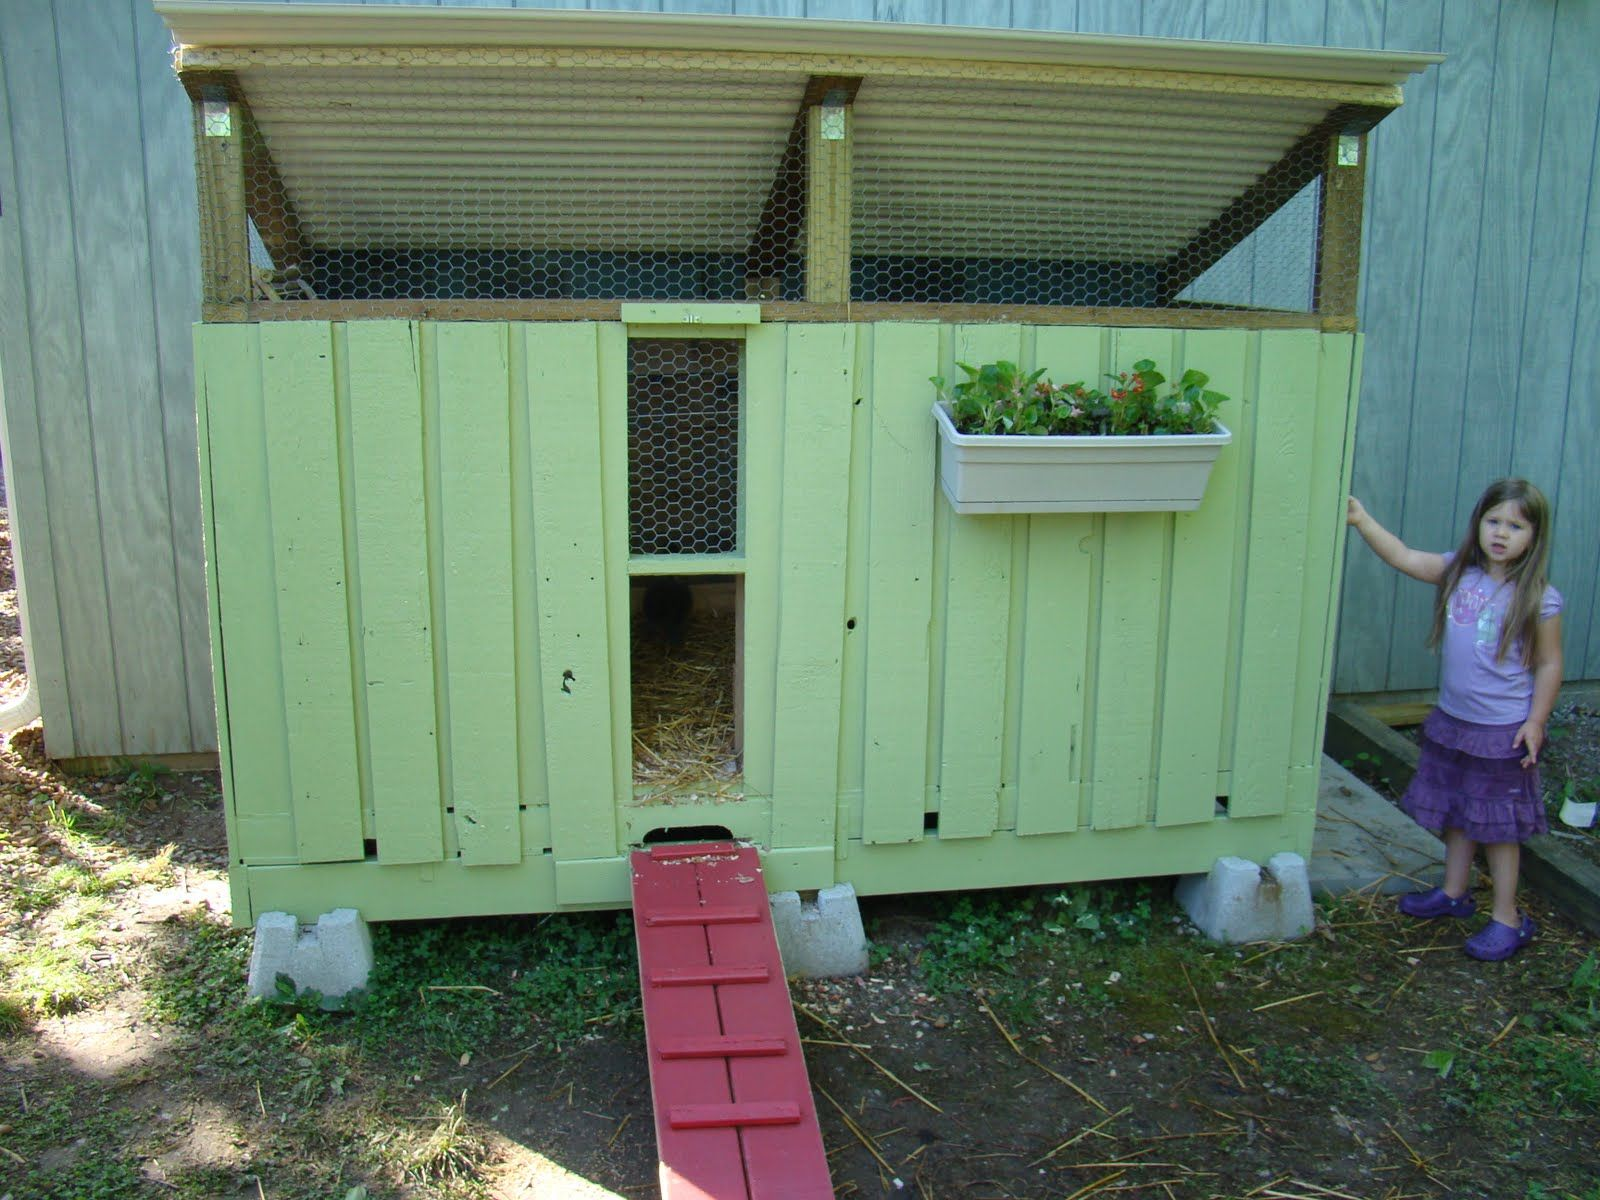 Baby shower ideas on pinterest dr seuss green eggs and for How to build a chicken coop from wooden pallets